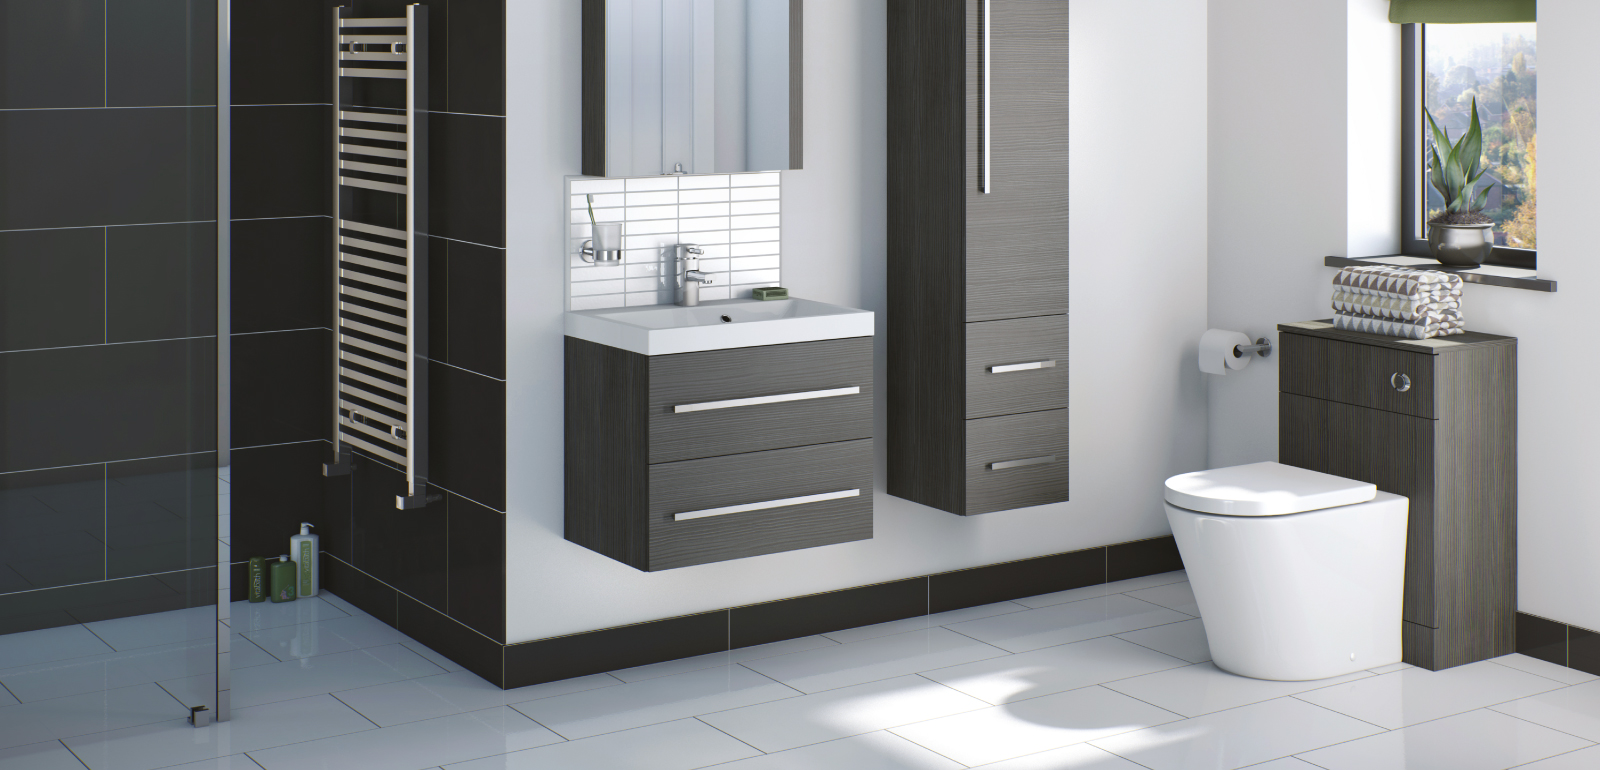 Victoria plumb bathroom cabinets specially for portland for Bathroom cabinets victoria plumb